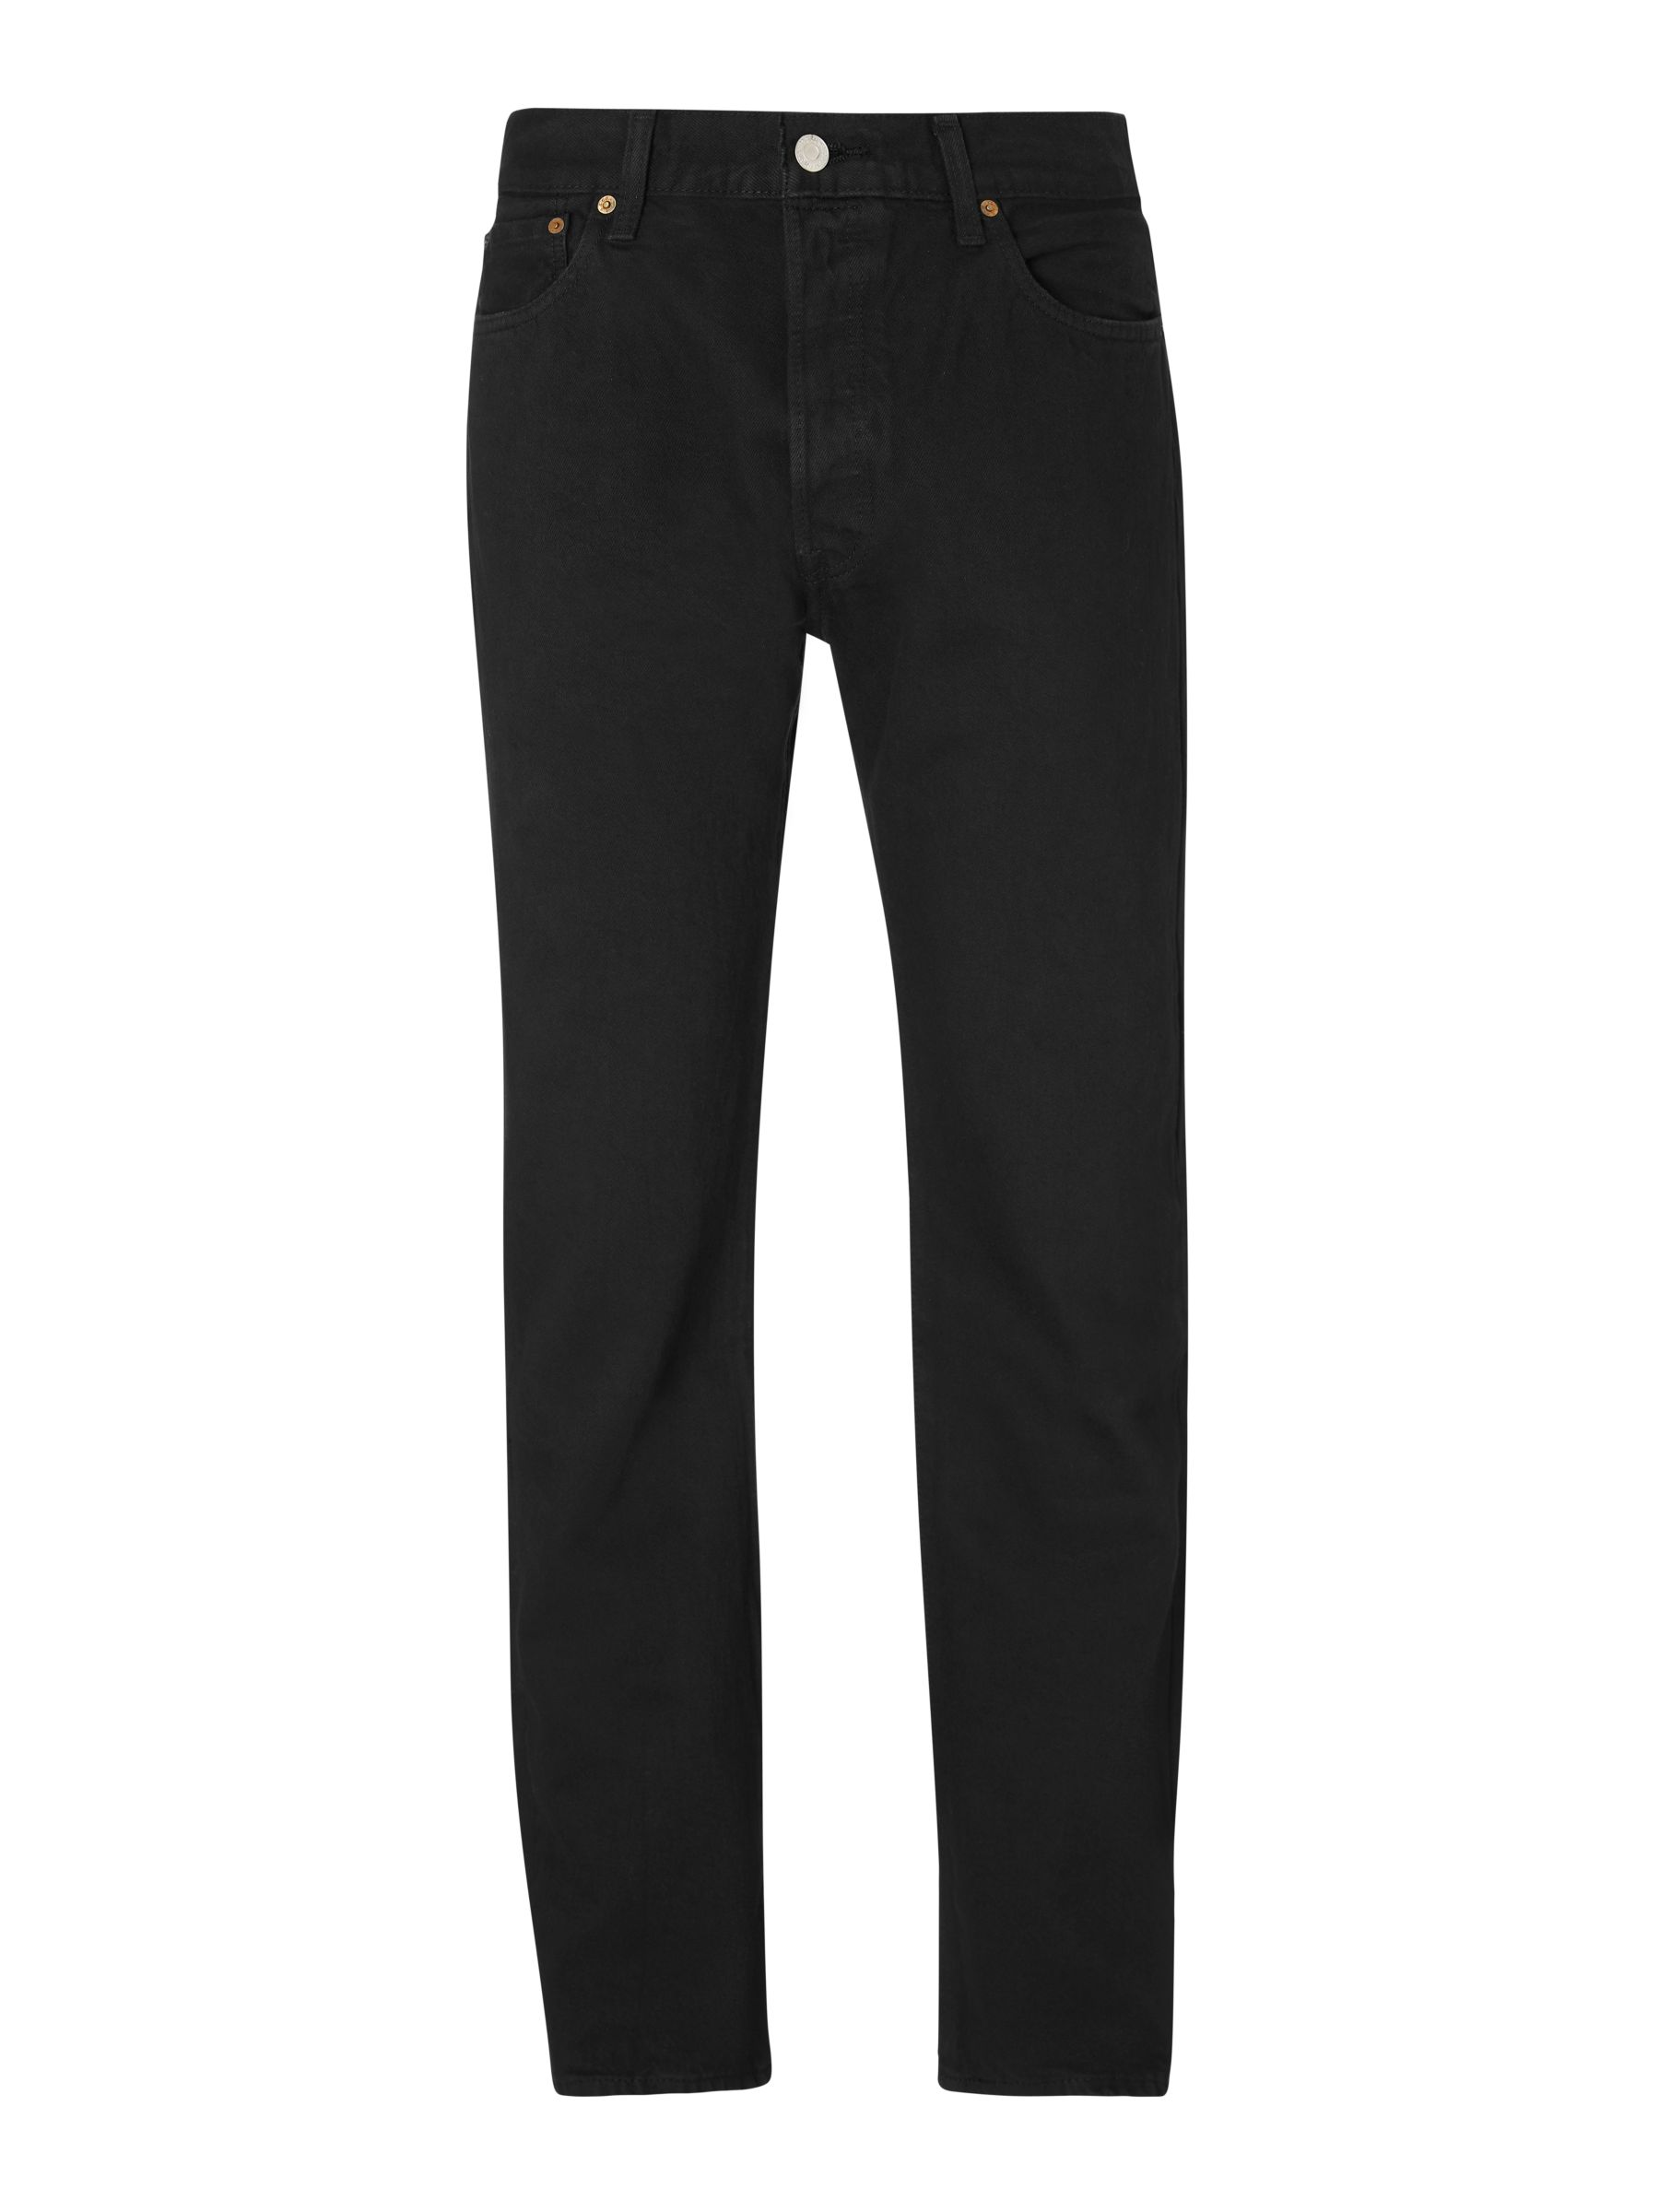 later available thoughts on Levi's 501 Original Straight Jeans, Black at John Lewis & Partners